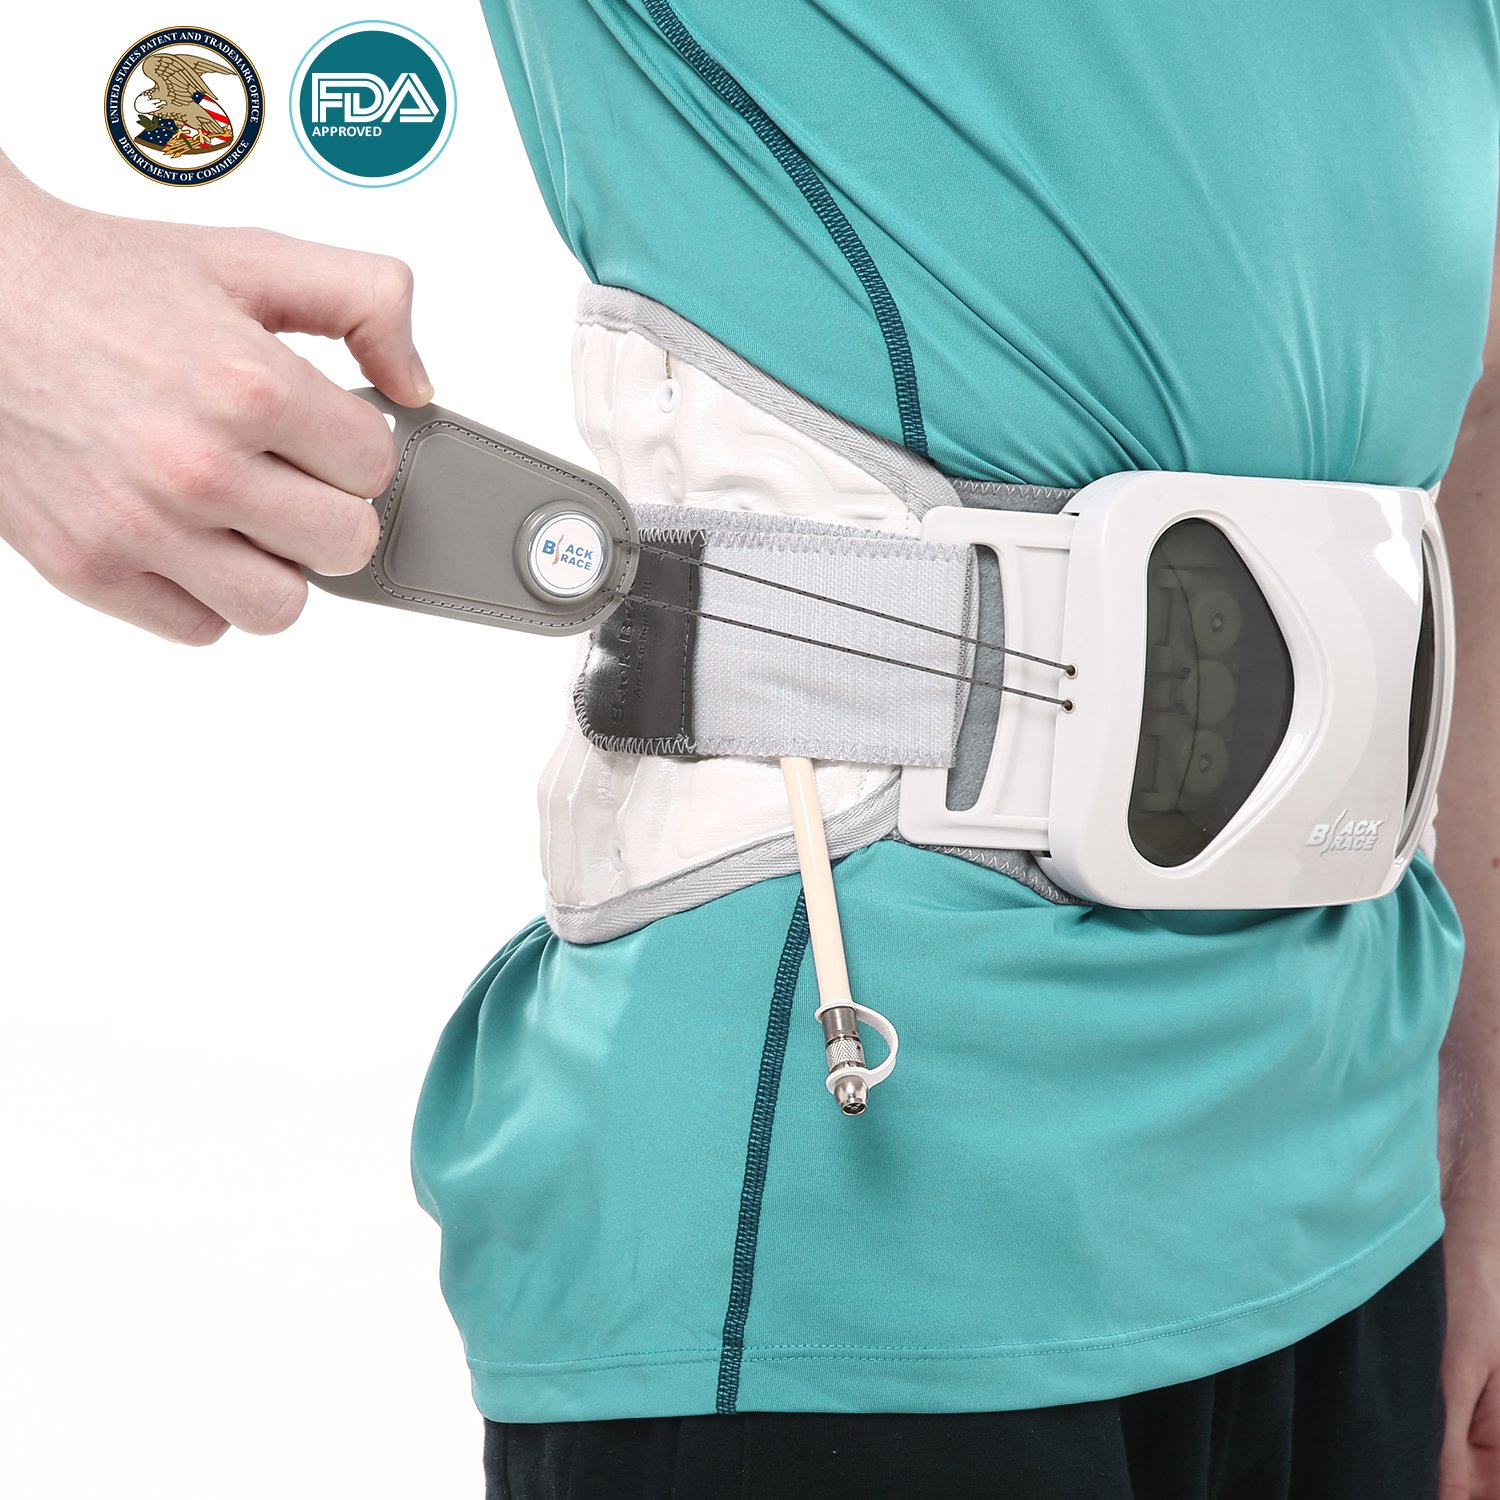 Hangsun Back Decompression Lumbar Traction Belt for Lower Back Pain Relief, Patented FDA Approved Lumbar Support Belt Medical Inflatable Back Brace (#M: 30-38 inches)